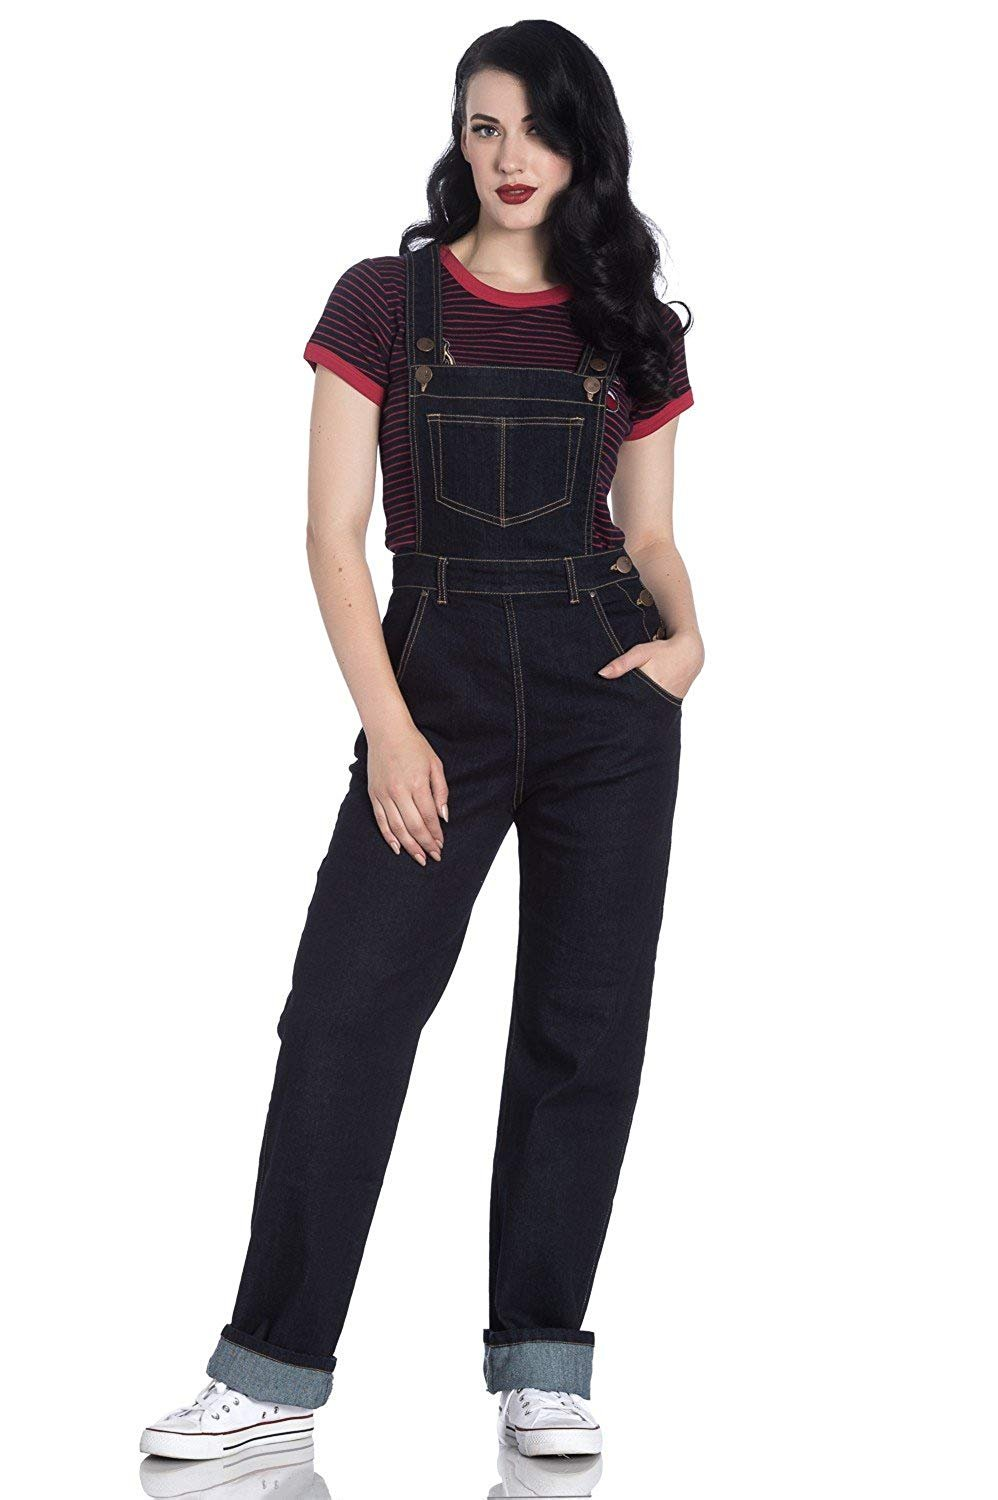 Hell Bunny Elly May Denim Jeans Landgirl 40s 50s Retro Rockabilly Dungarees